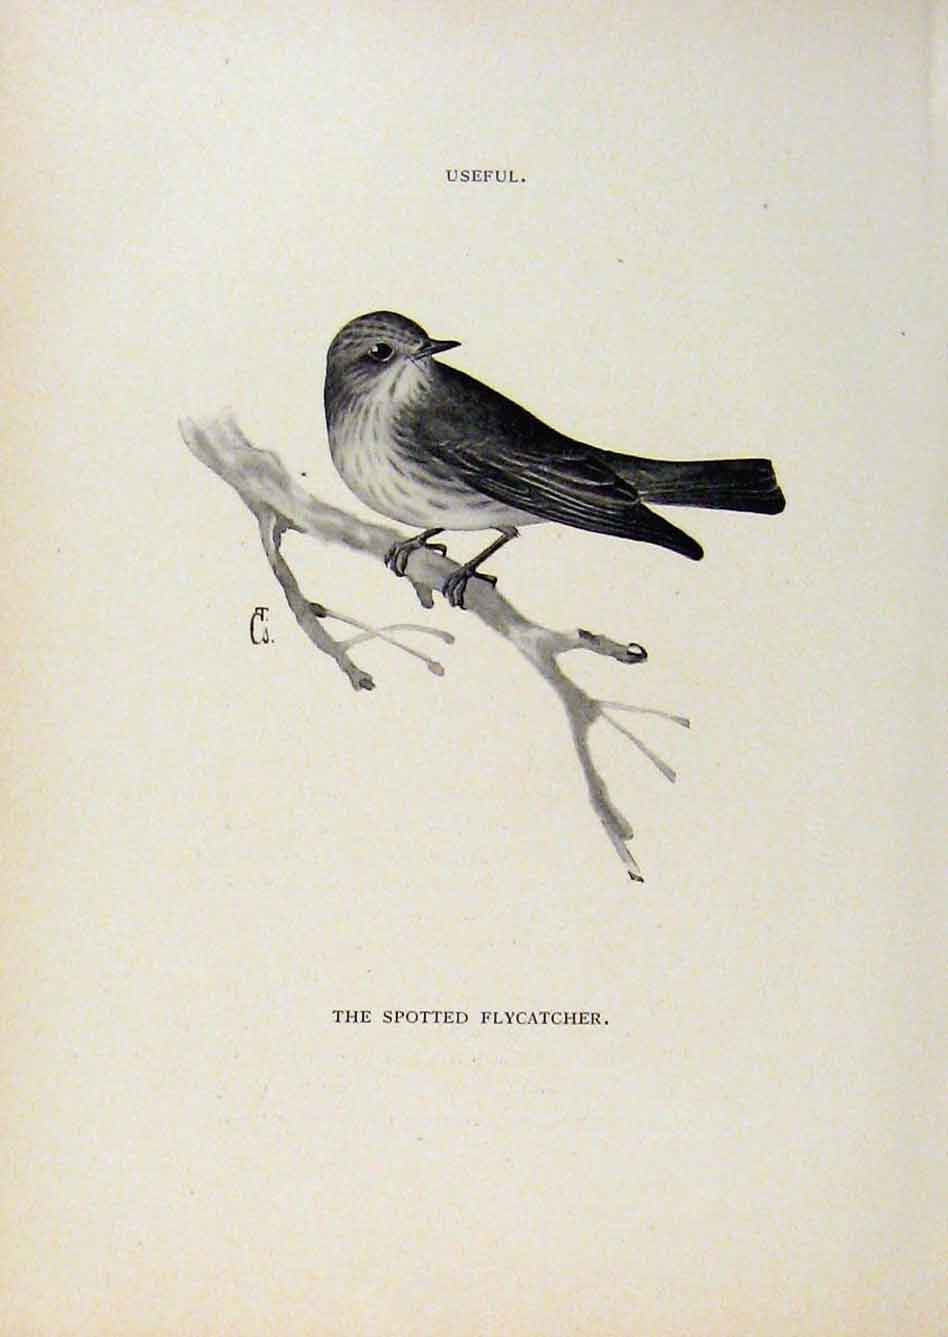 Print Birds Useful And Harmful Spotted Flycatcher By Csorgey 468291 Old Original